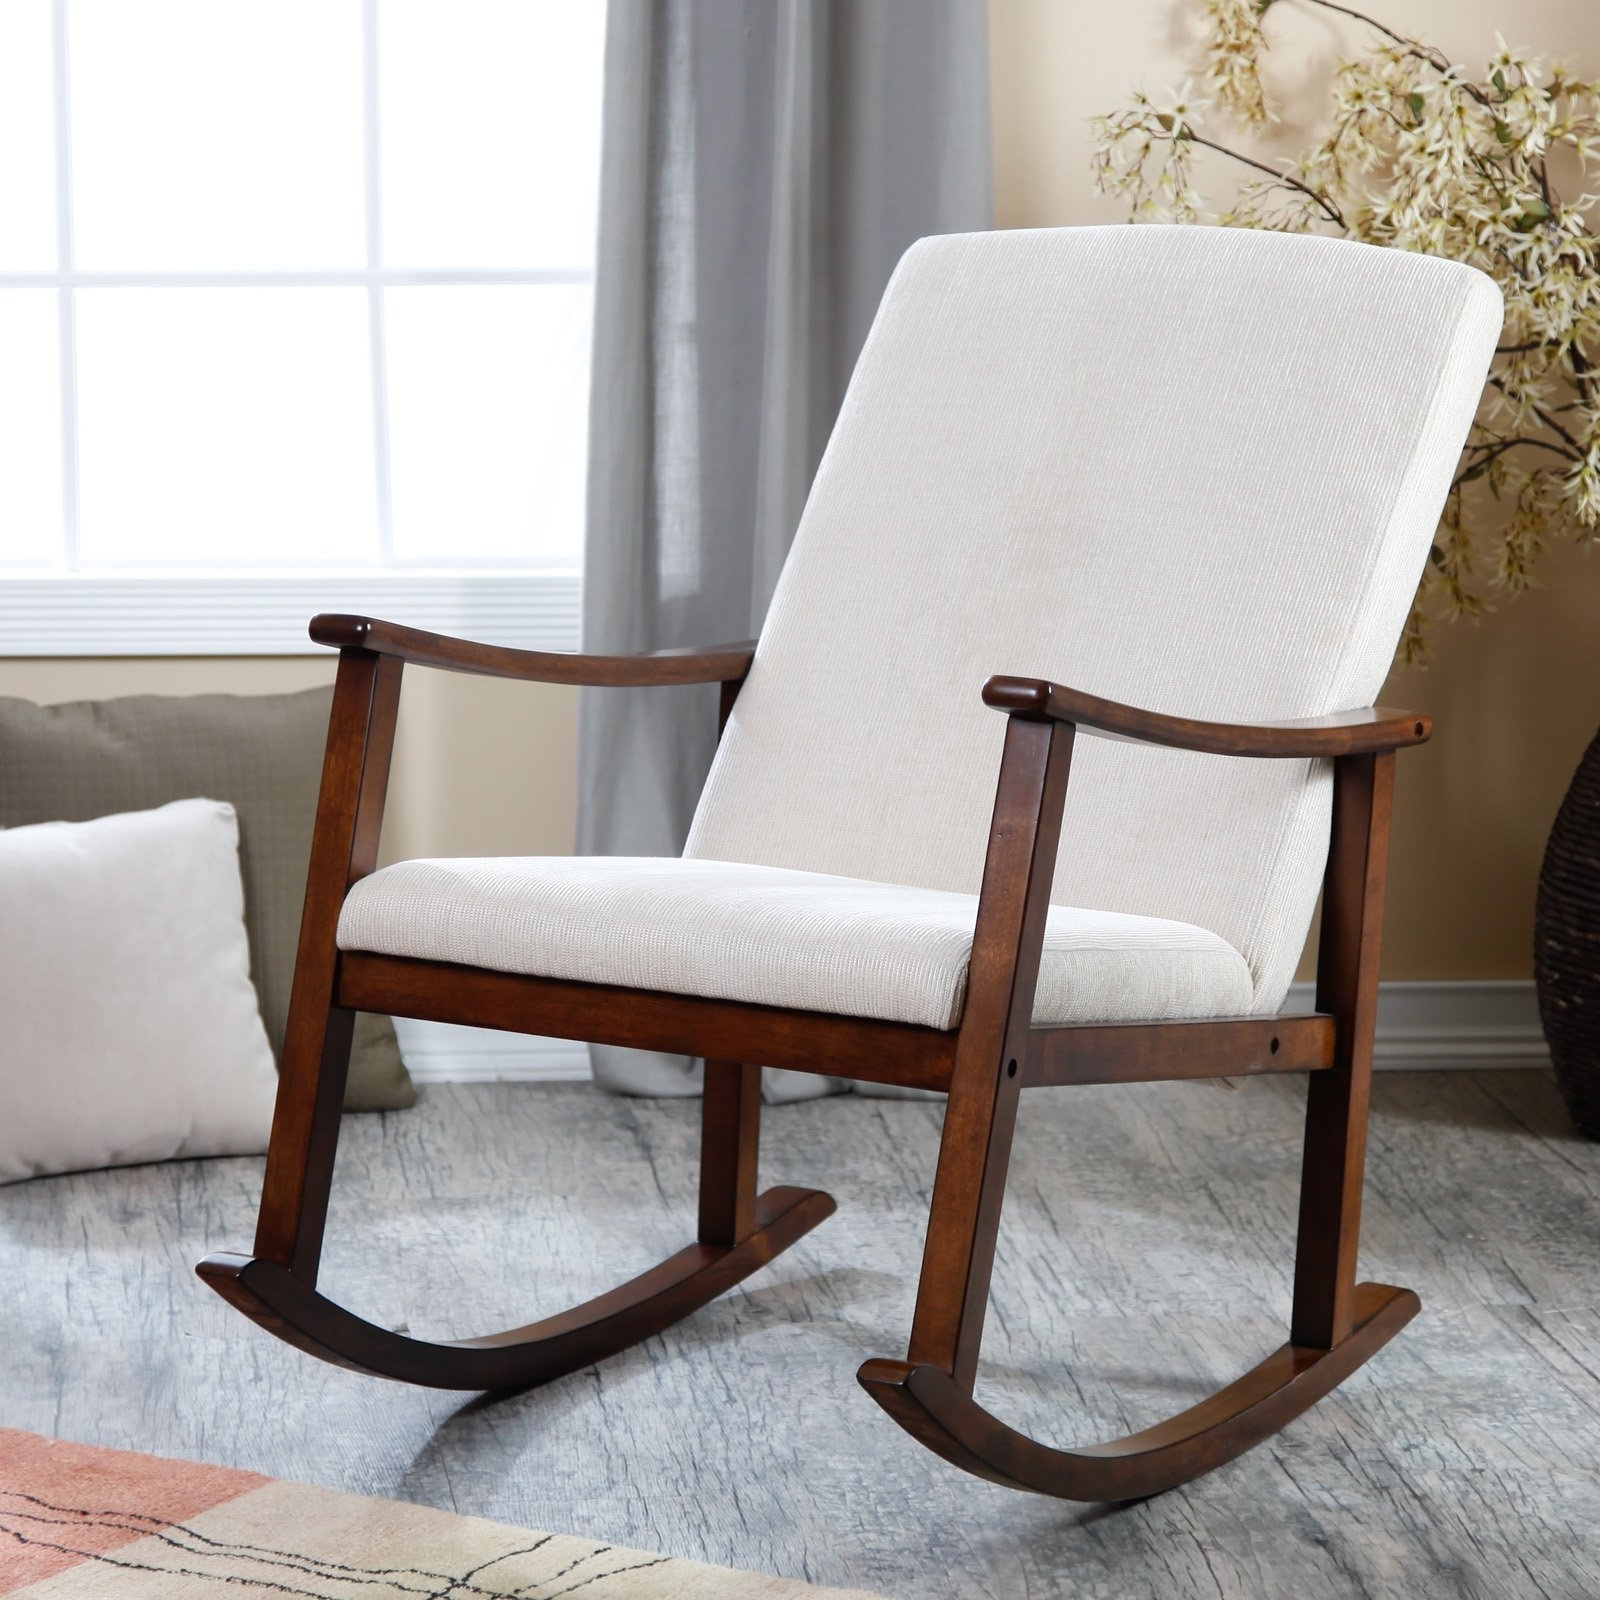 Rocking Chairs With Cushions Intended For Fashionable Bedroom: Outstanding Design Of Rocking Chair Cushions For Nursery (View 7 of 15)